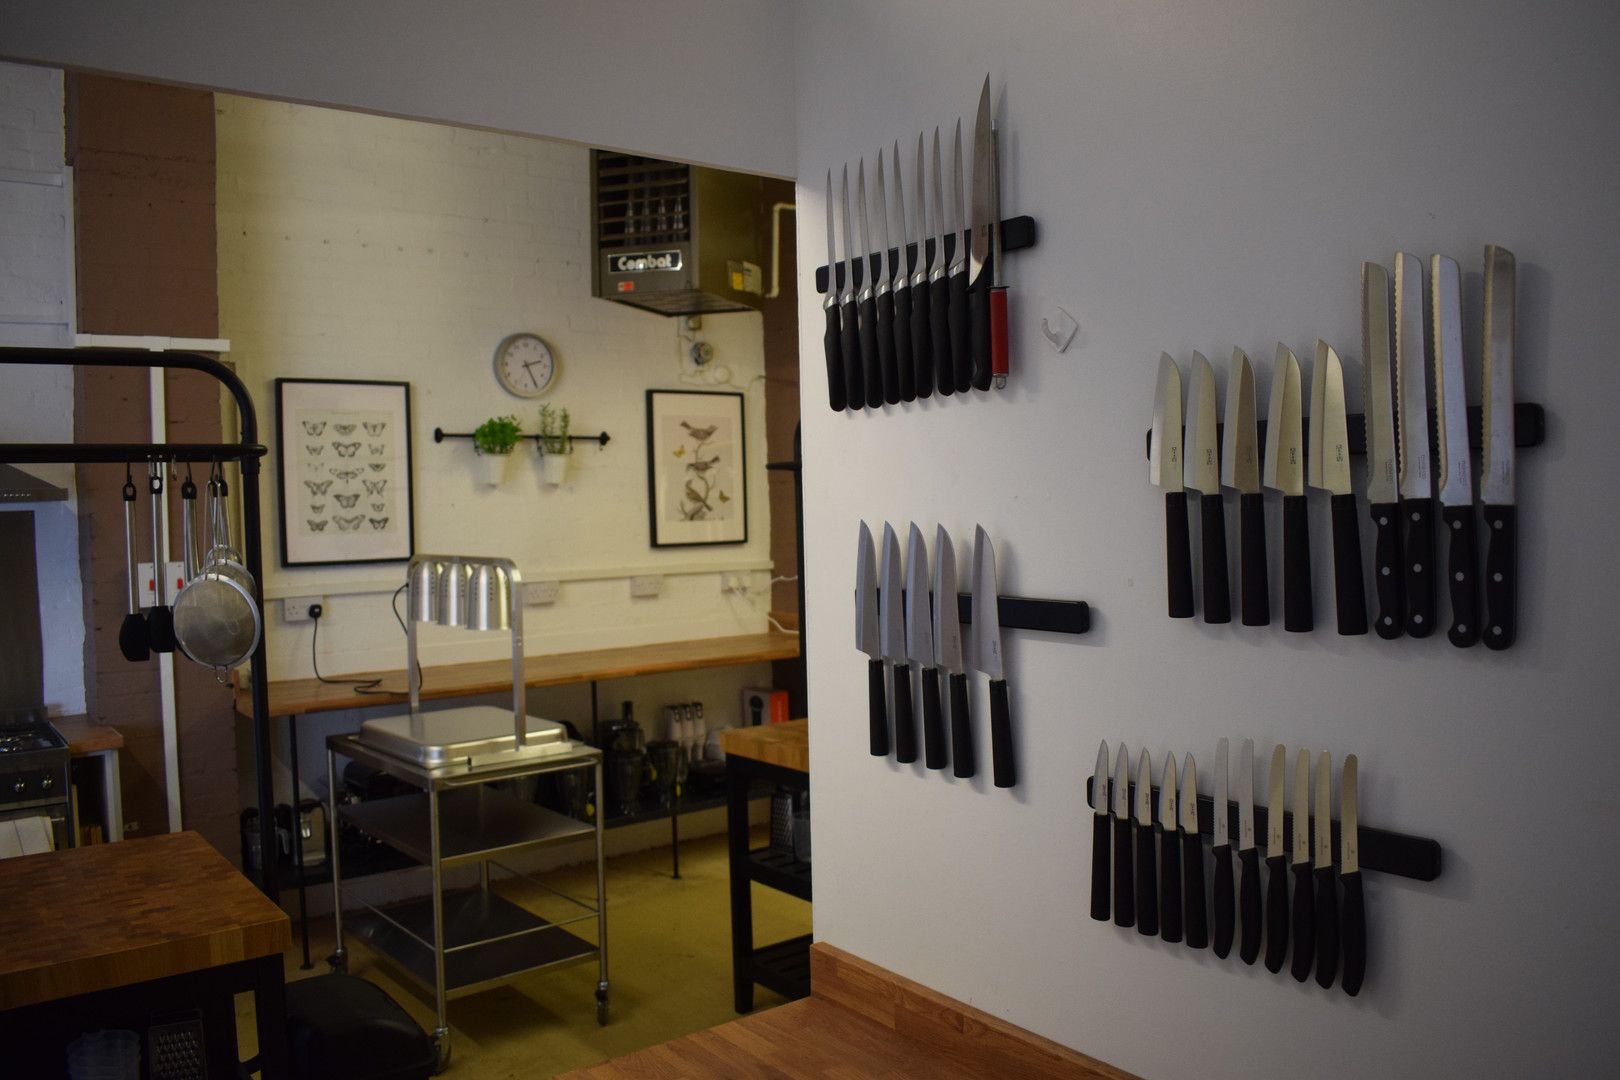 Knife rack and shot of cooking area